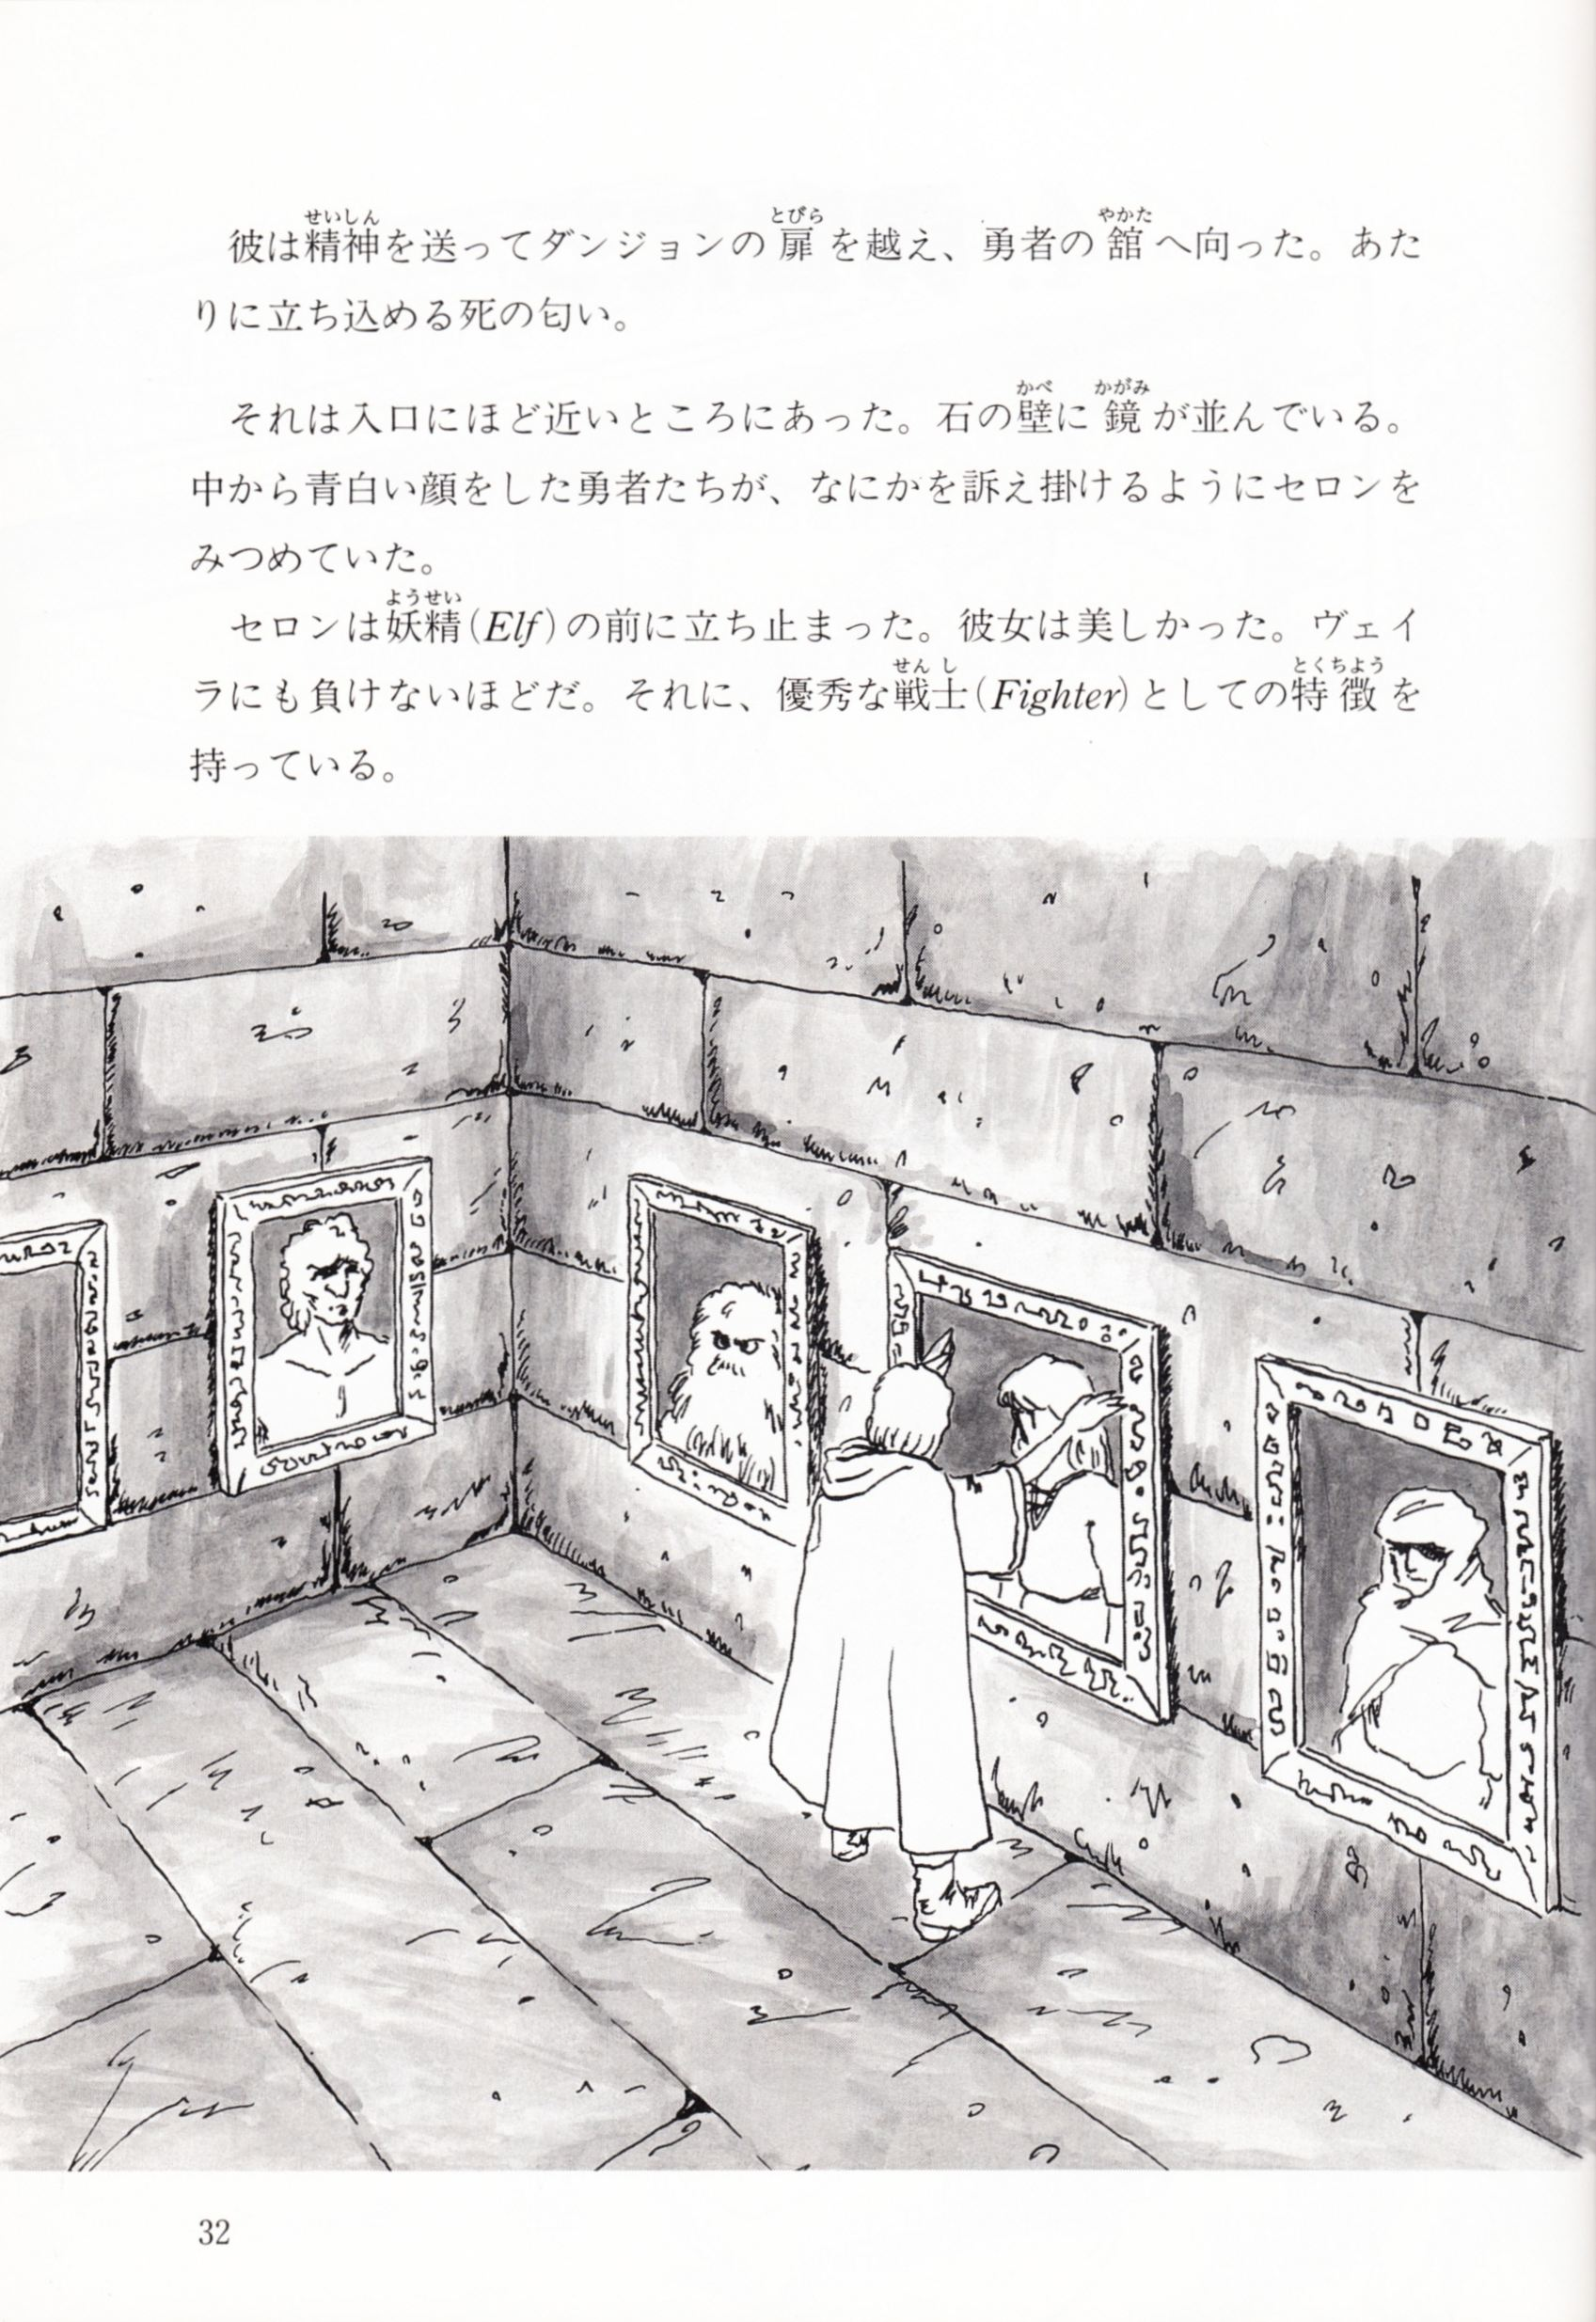 Game - Dungeon Master - JP - FM Towns - Story Guide - Page 034 - Scan